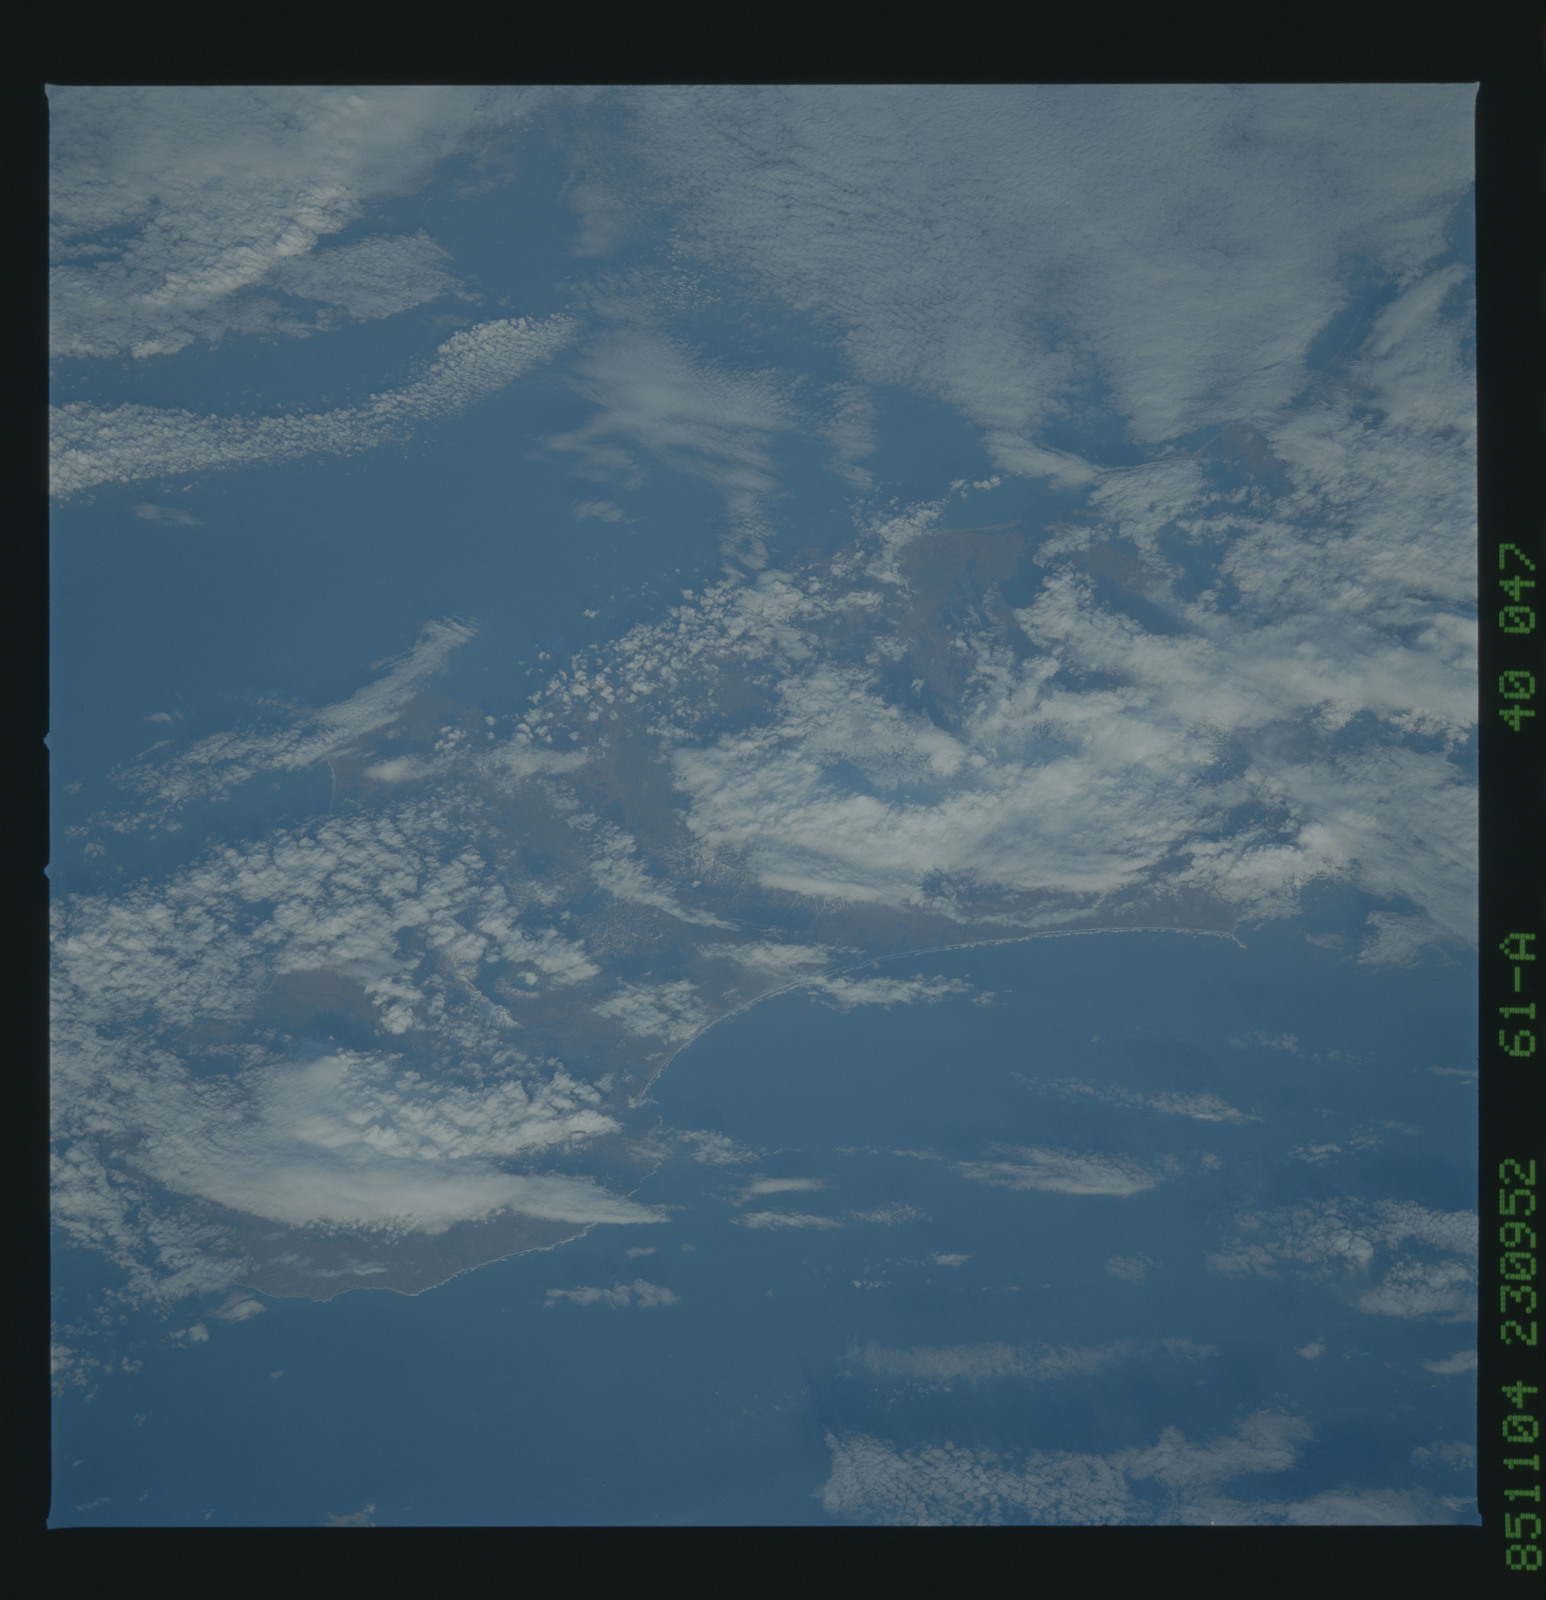 61A-40-047 - STS-61A - STS-61A earth observations